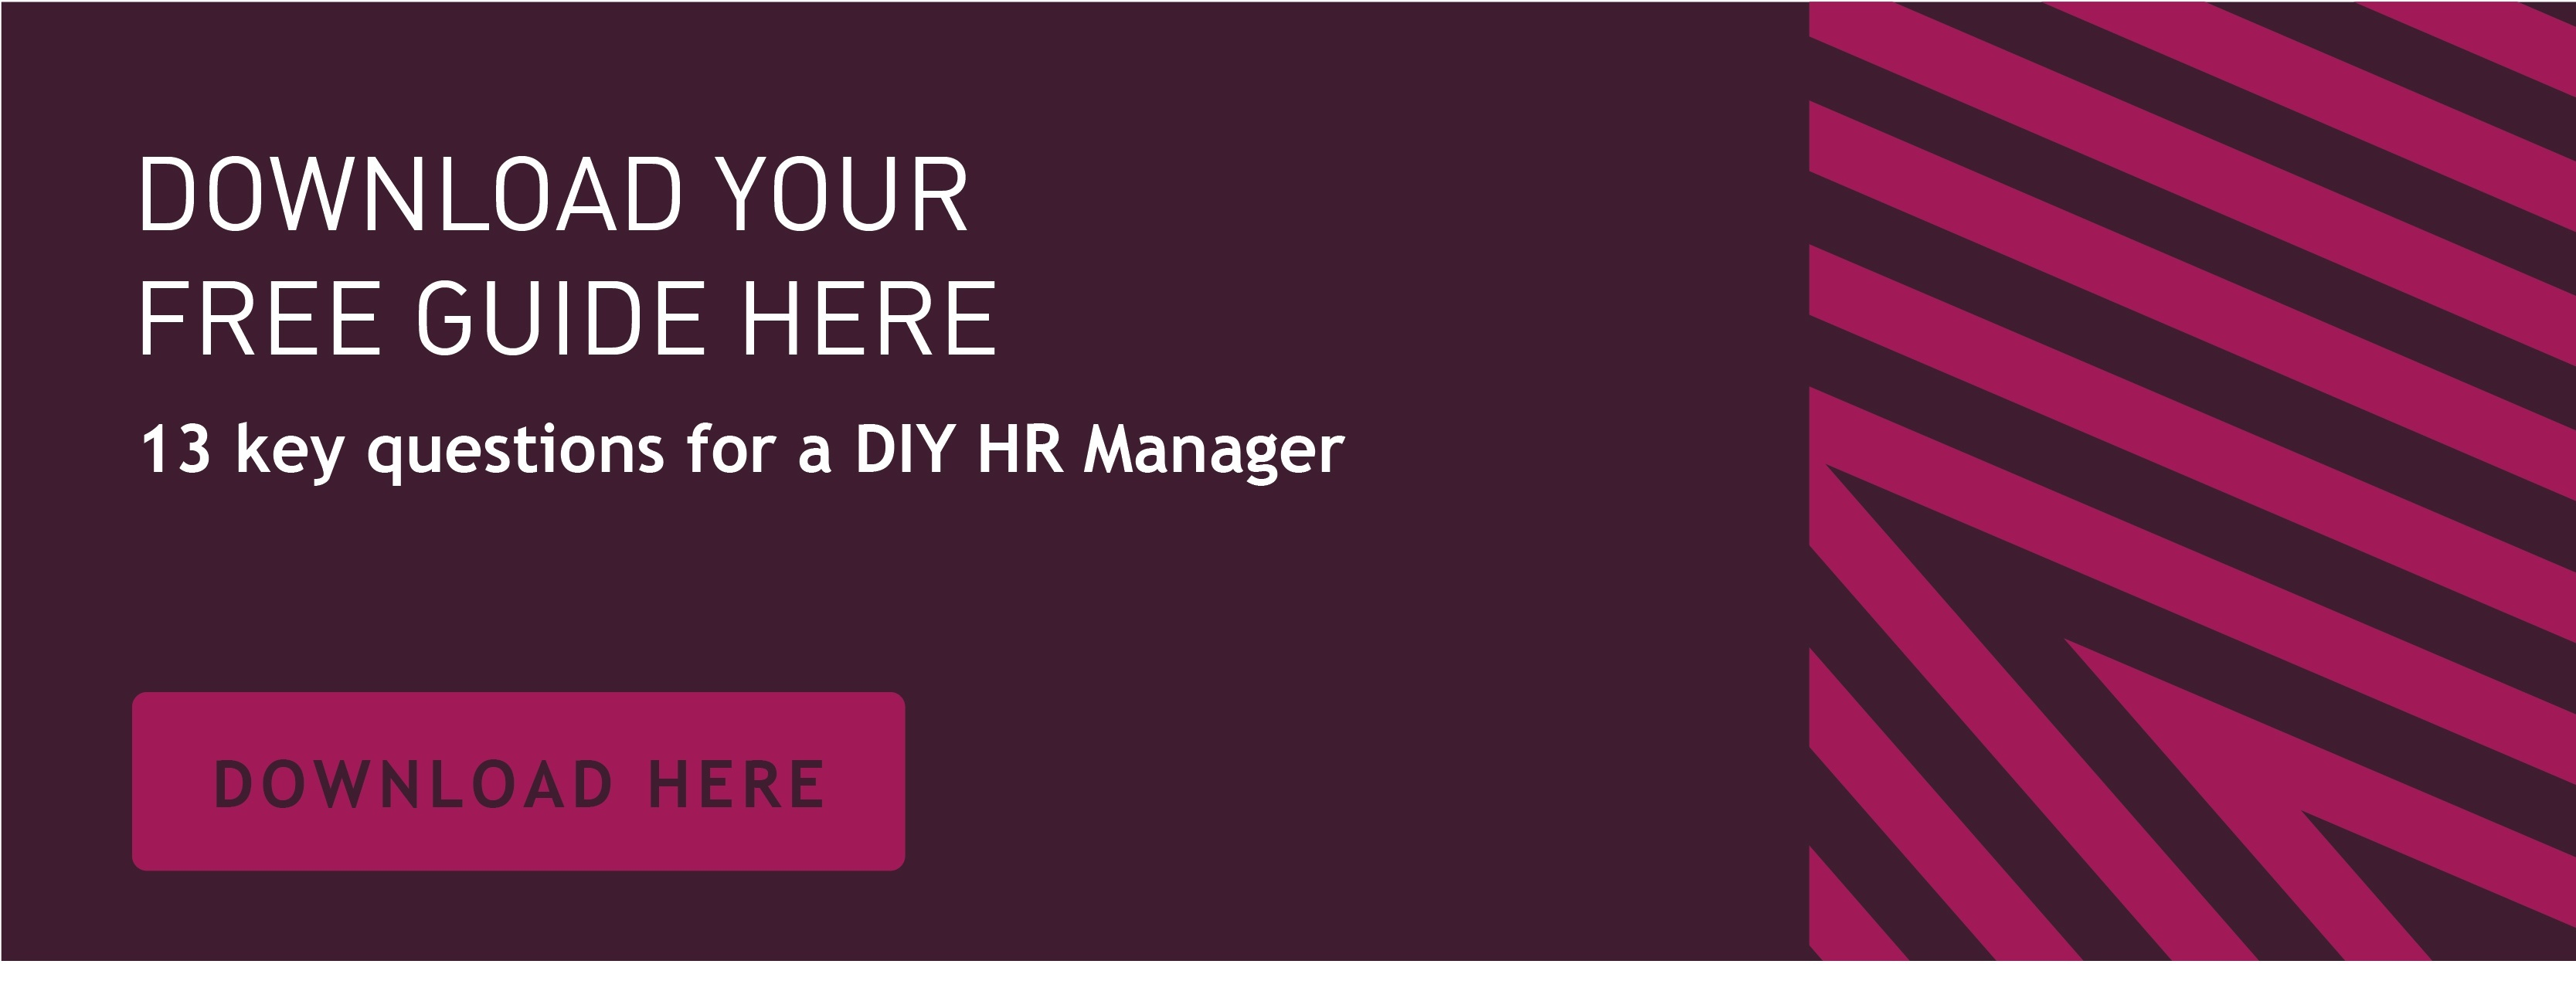 13 Key Questions For A DIY HR Manager